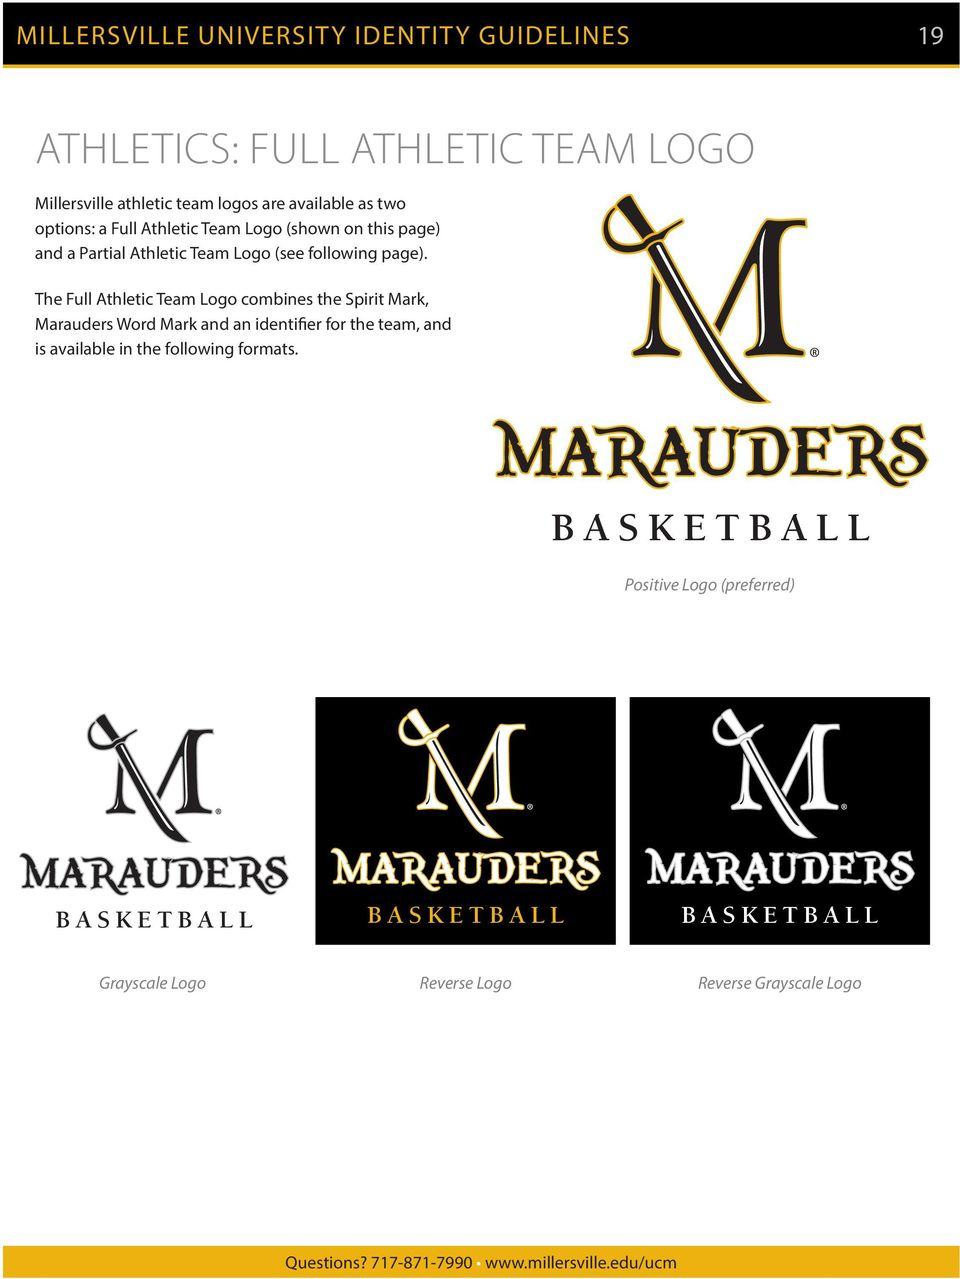 The Full Athletic Team Logo combines the Spirit Mark, Marauders Word Mark and an identifier for the team, and is available in